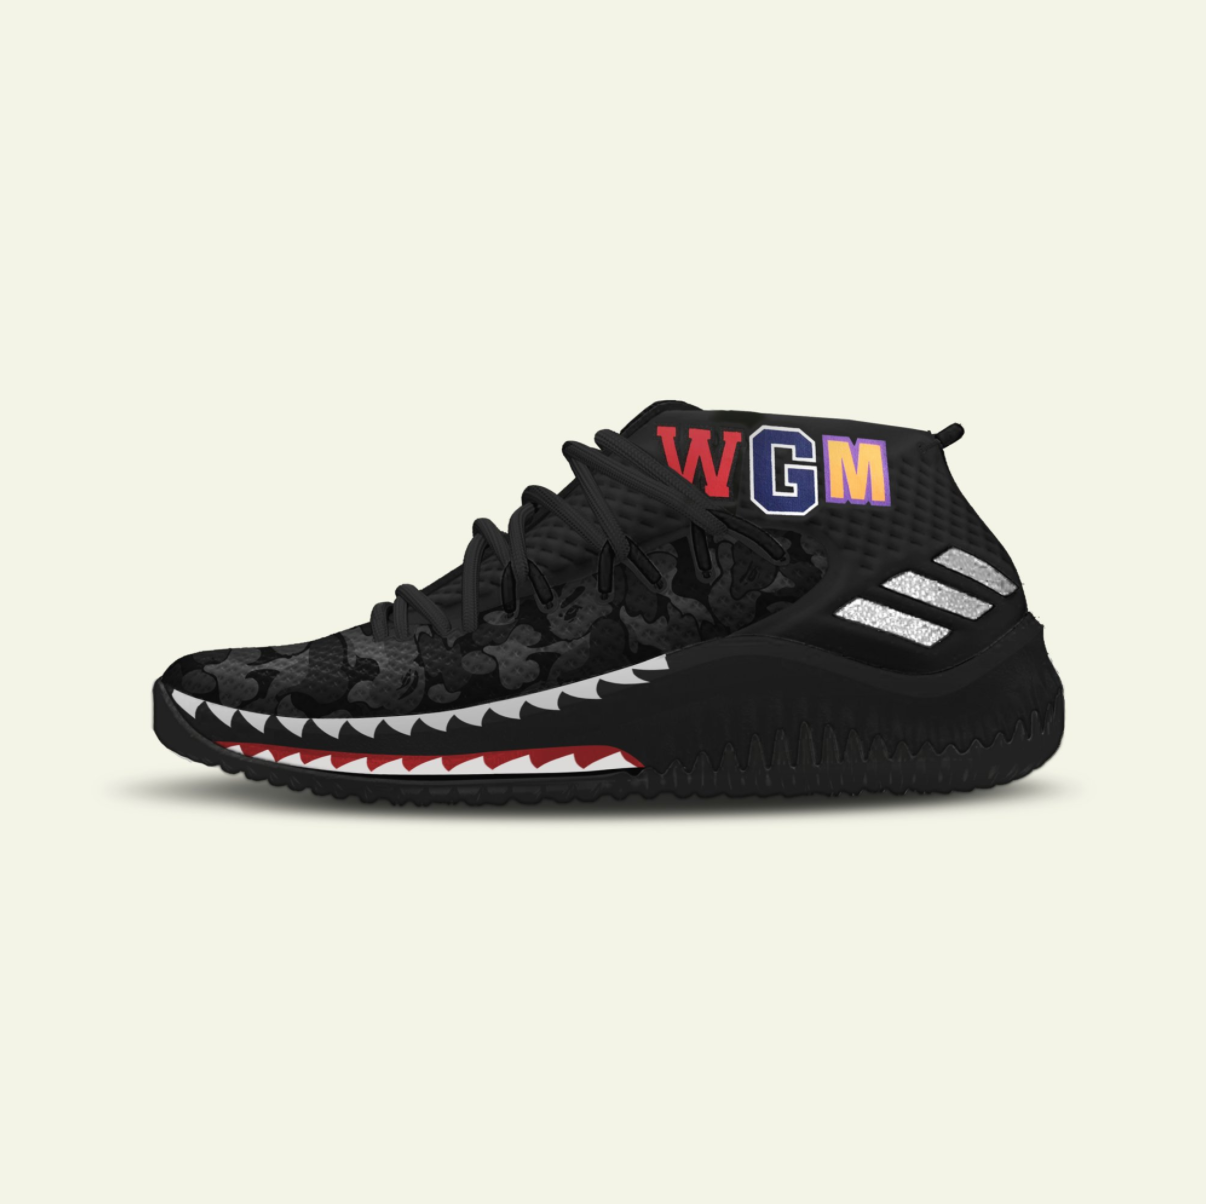 low priced dd485 2ad06 The BAPE adidas Dame 4 Pack - Pricing and Release Date ...